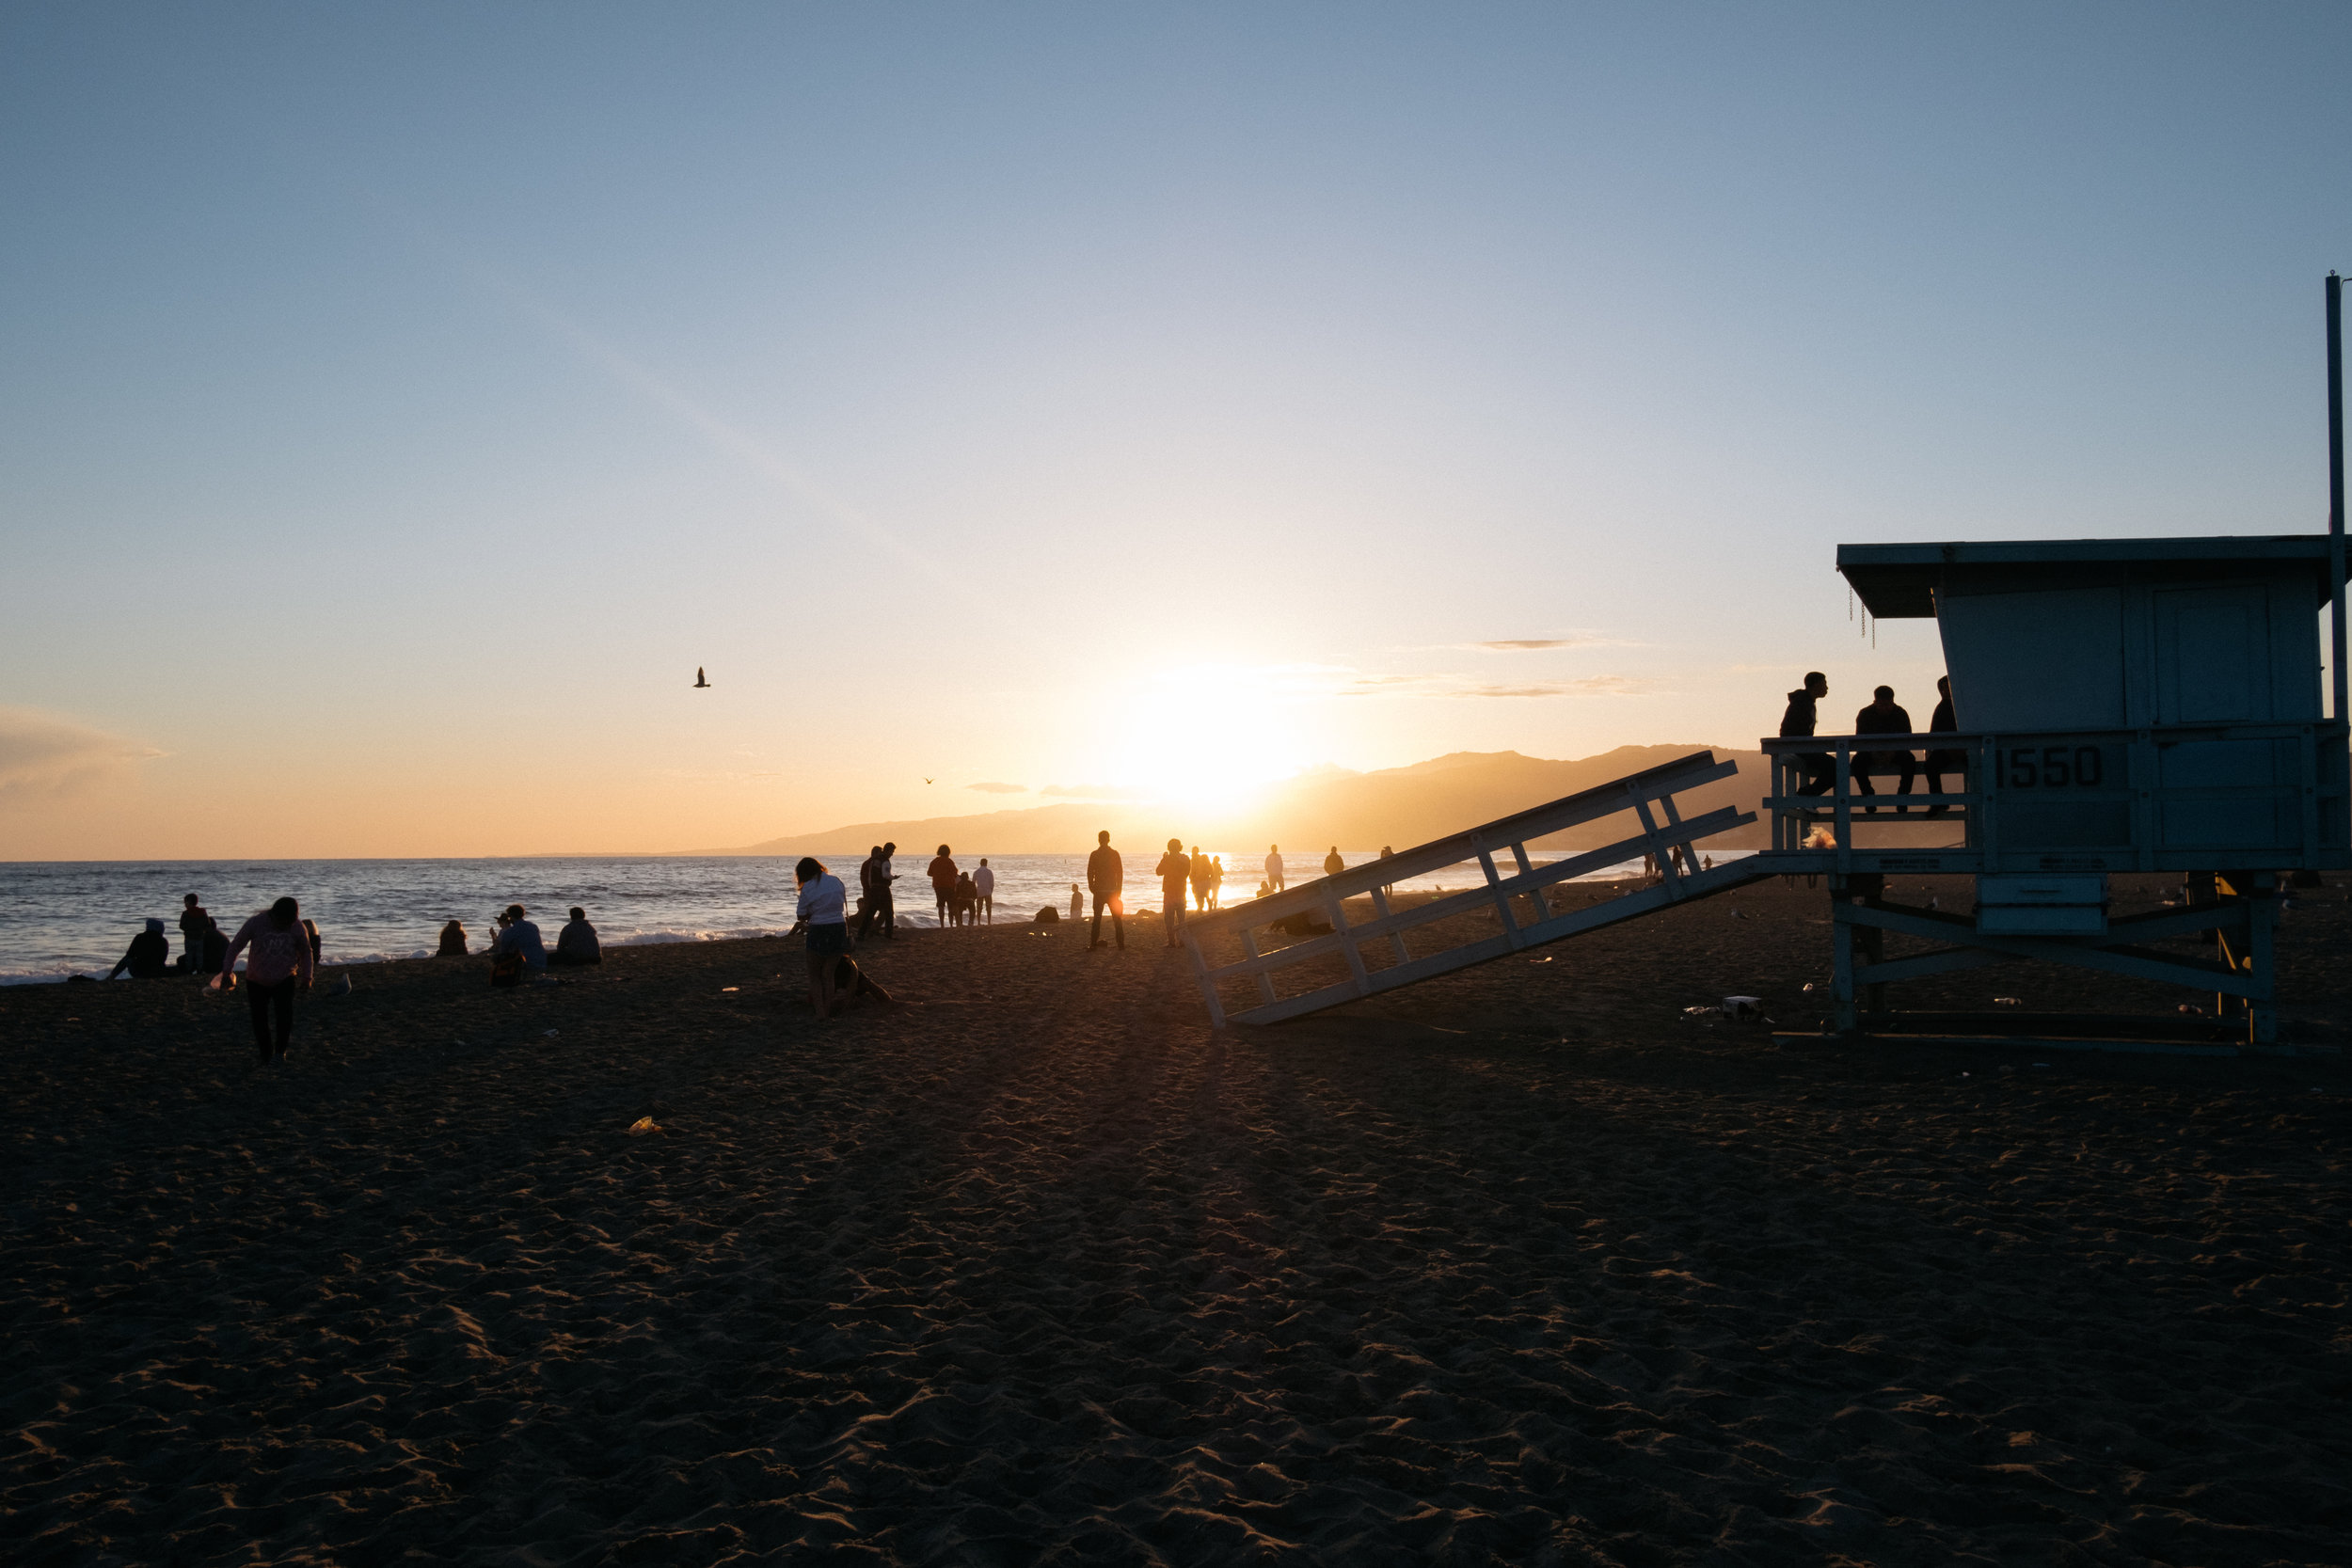 Santa Monica beach at sunset